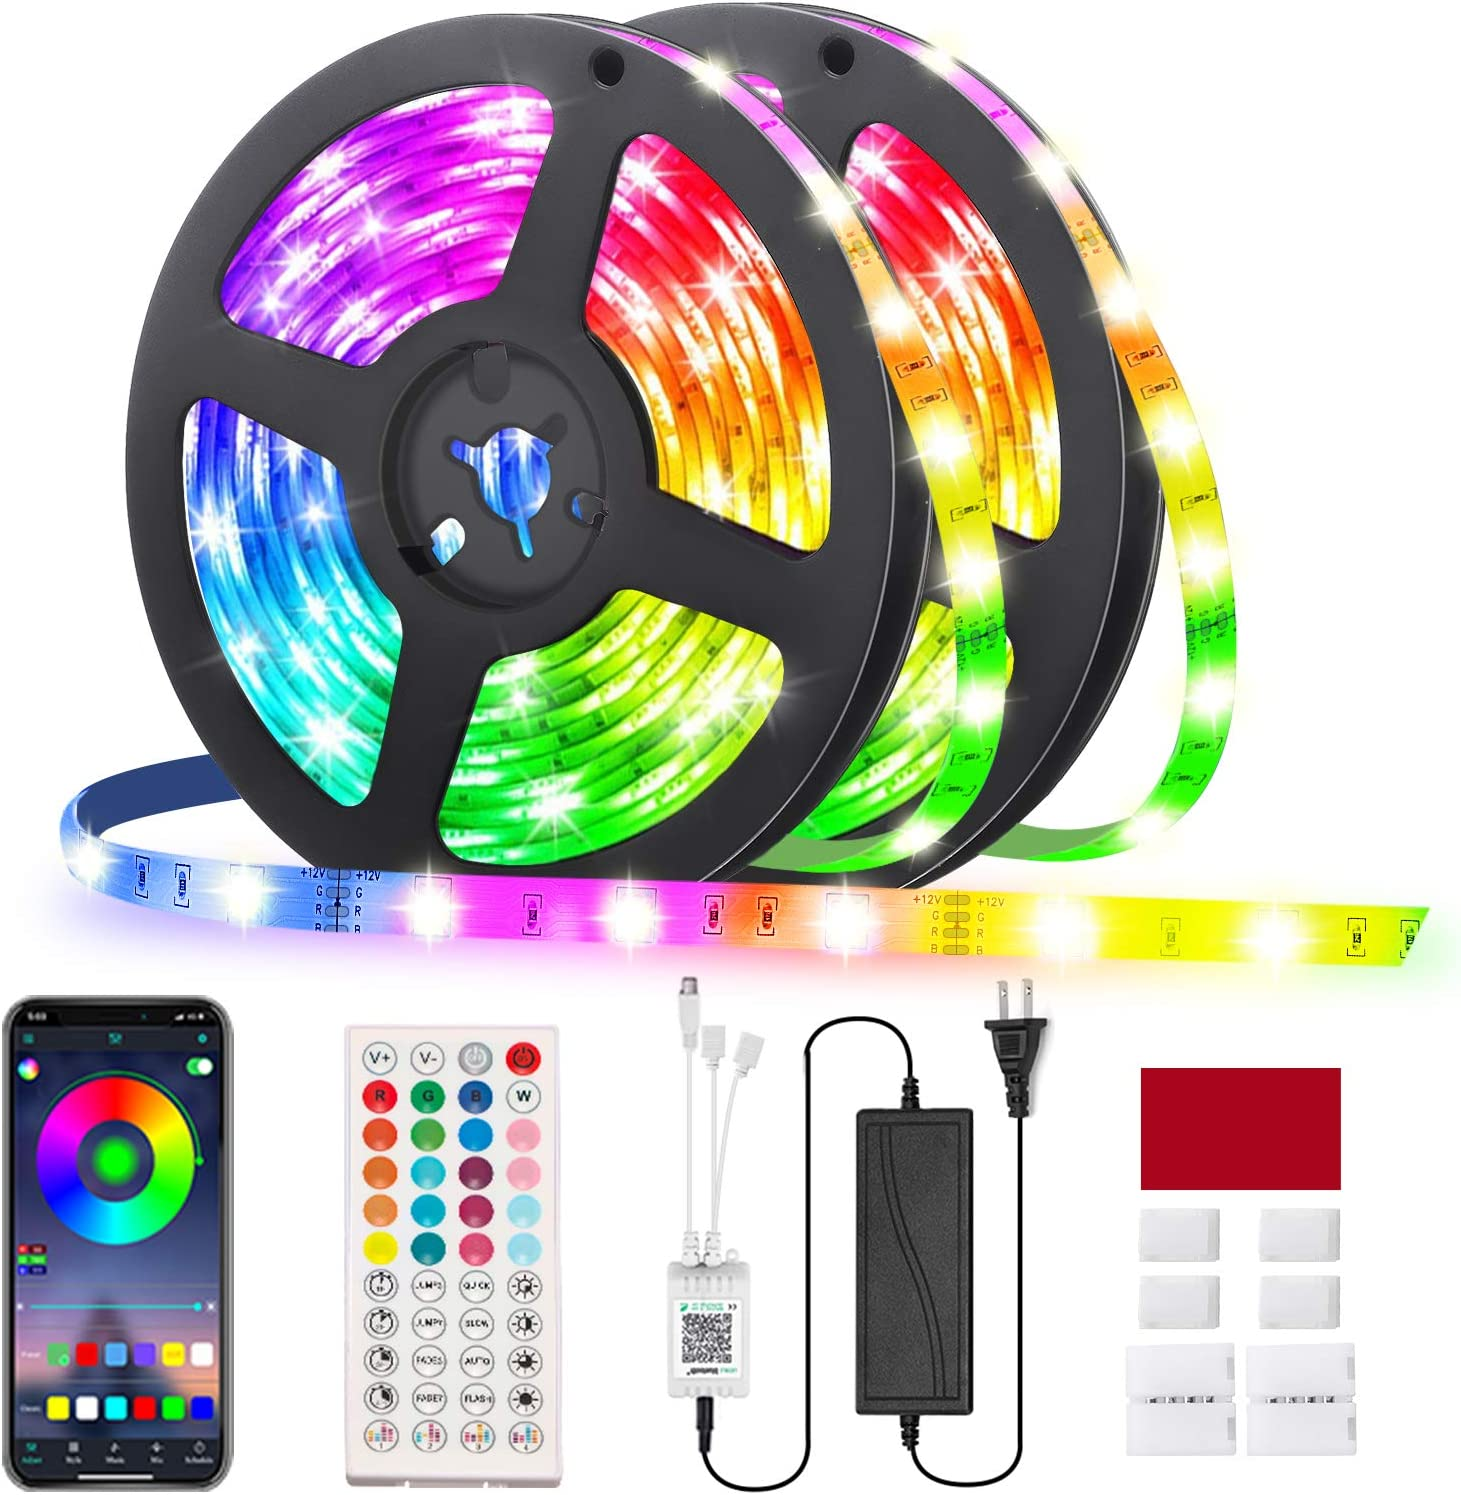 RGB Led Strip Now on sale Lights 32.8ft GLIME Contro Strips Direct stock discount 10m with App